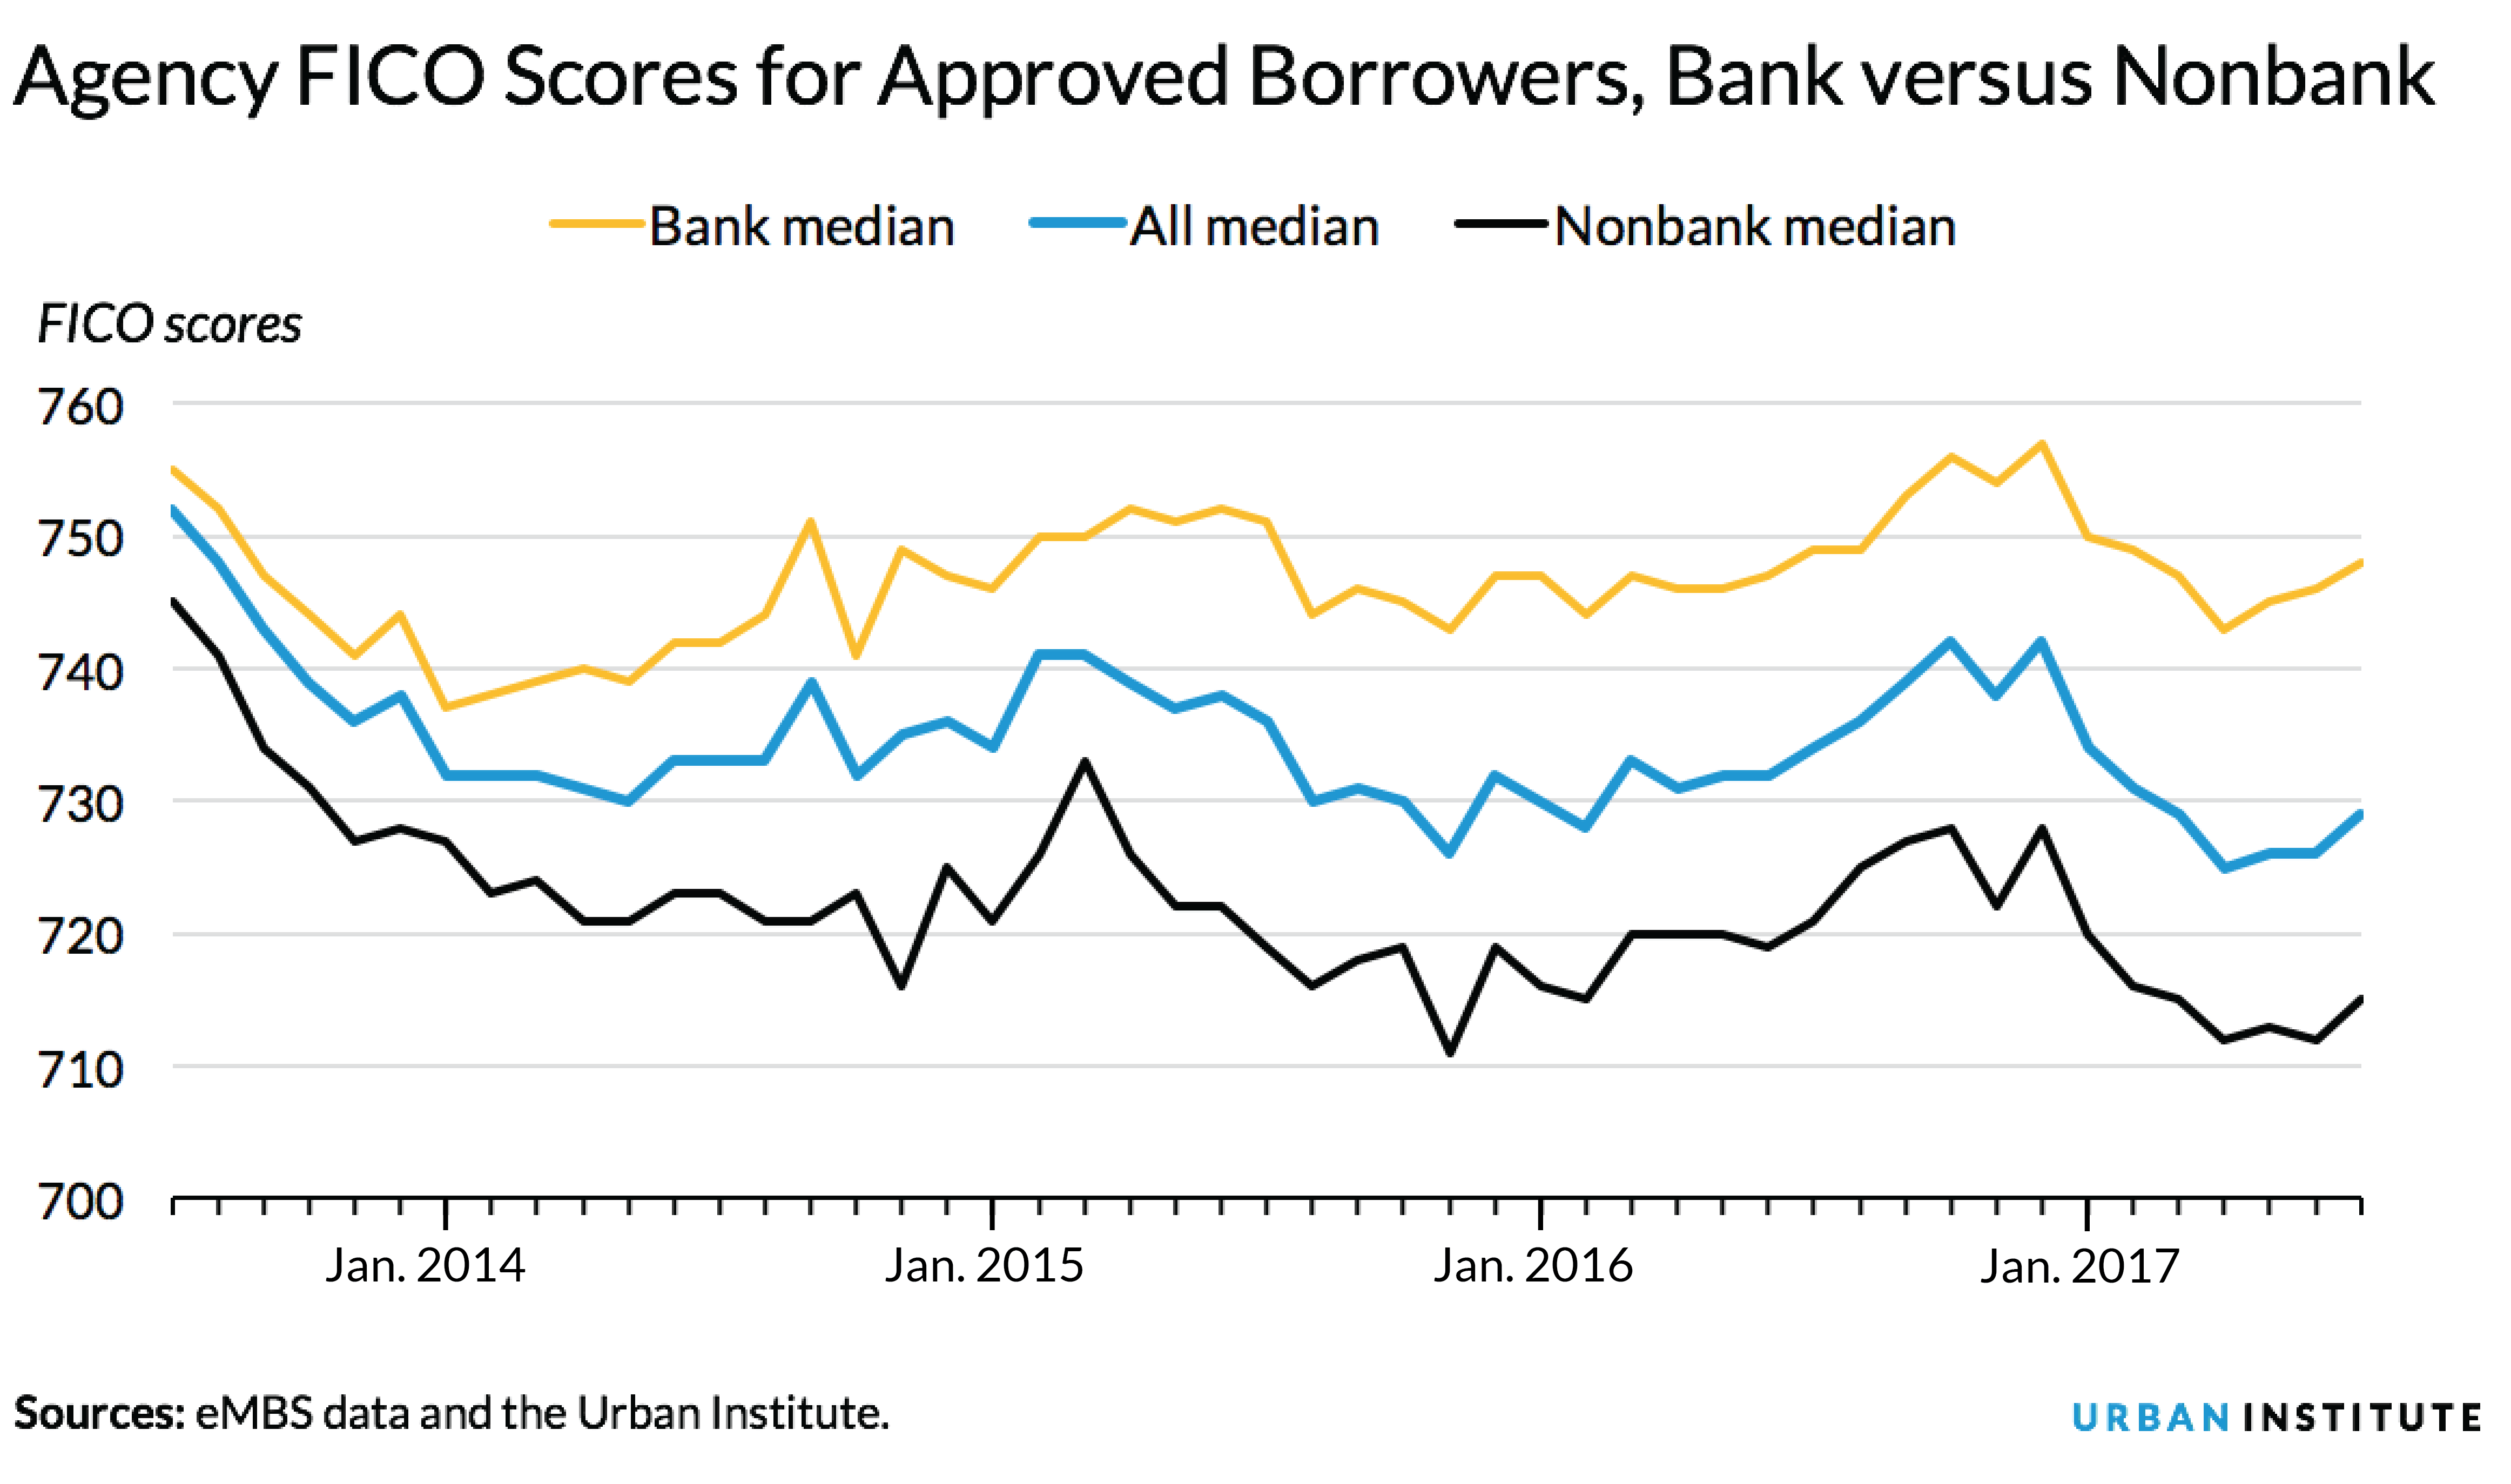 fico scores of approved borrowers, nonbank vs bank